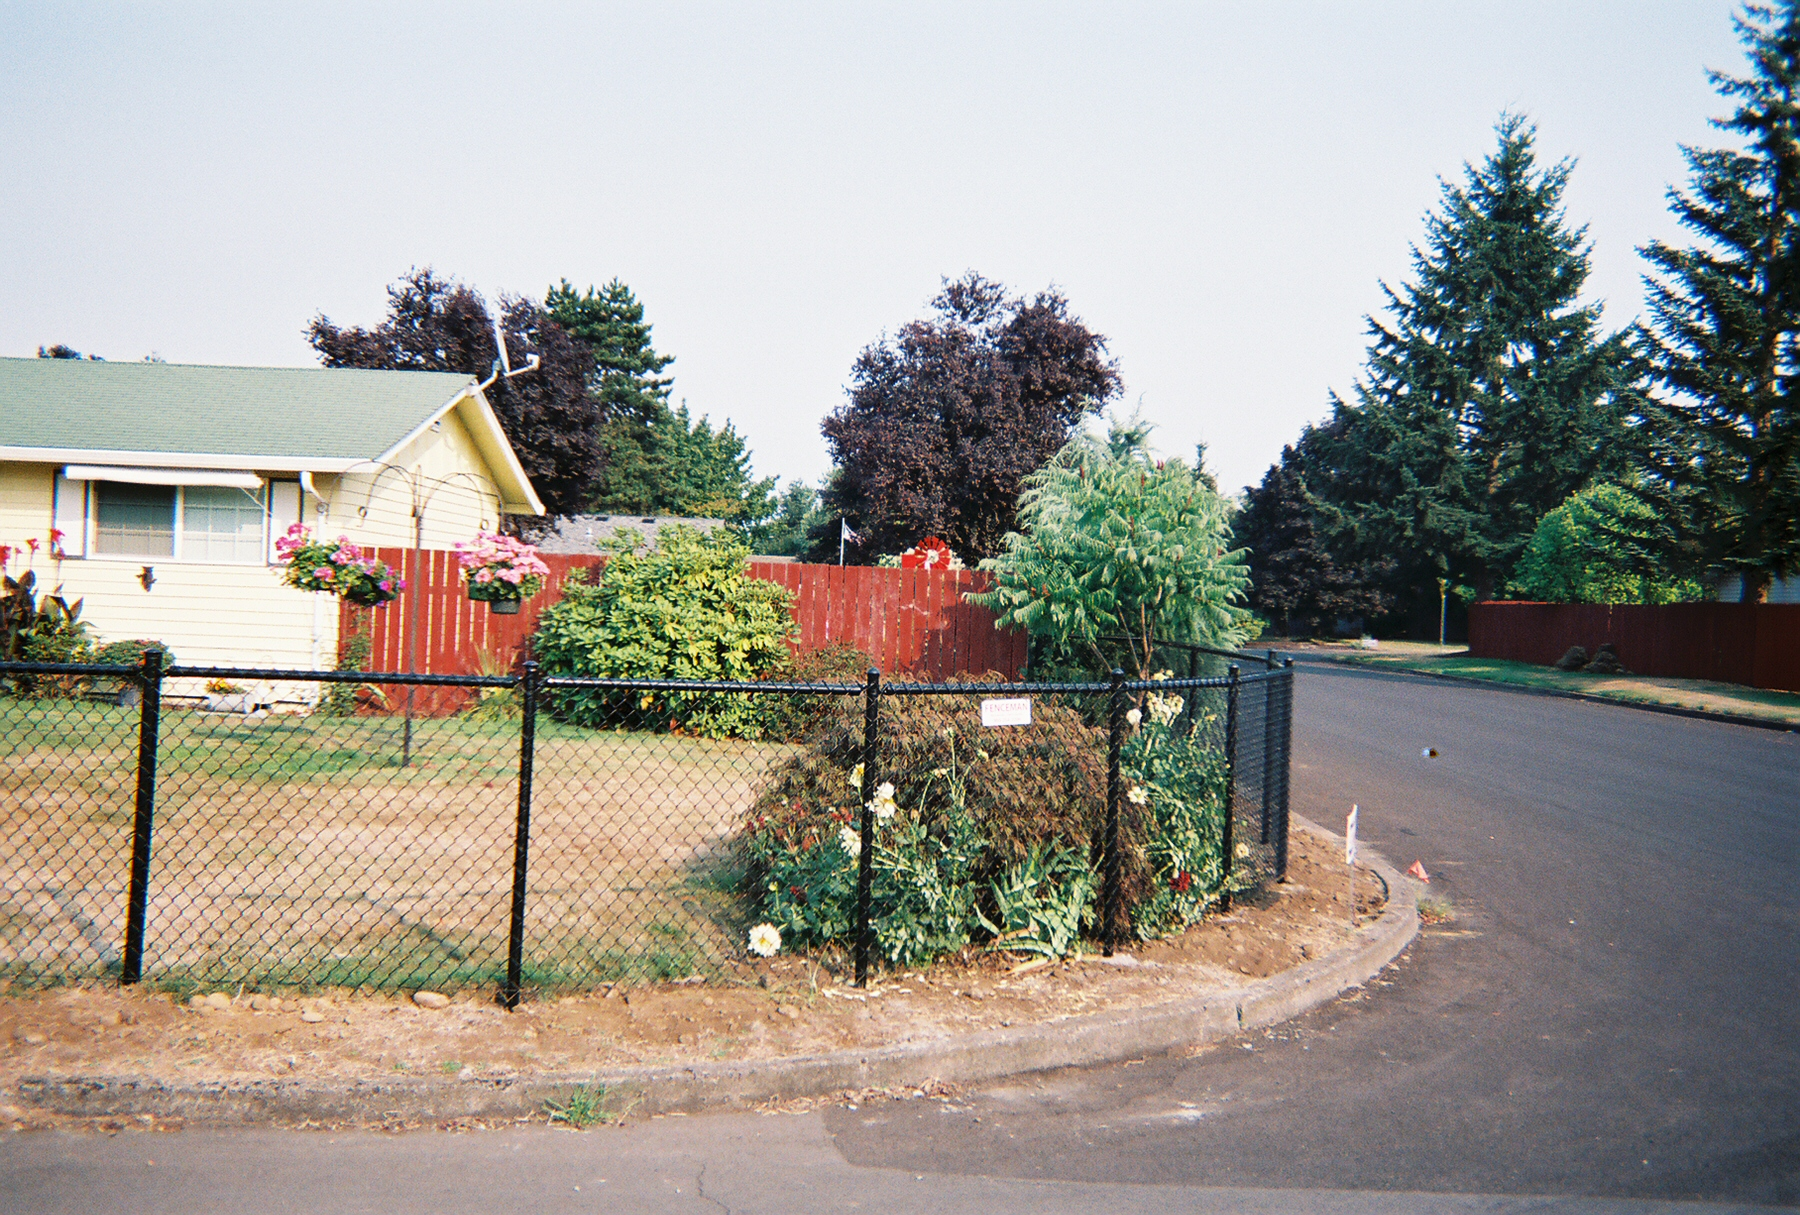 Custom Radius Black Chain link adding curb appeal, thus increasing the value of your home. Contact Vancouver Washington's Best Fence Builders. The Fenceman Fence Company installs wood, vinyl, chain link and ornamental iron fences. We also offer materials for the do it yourselfer.